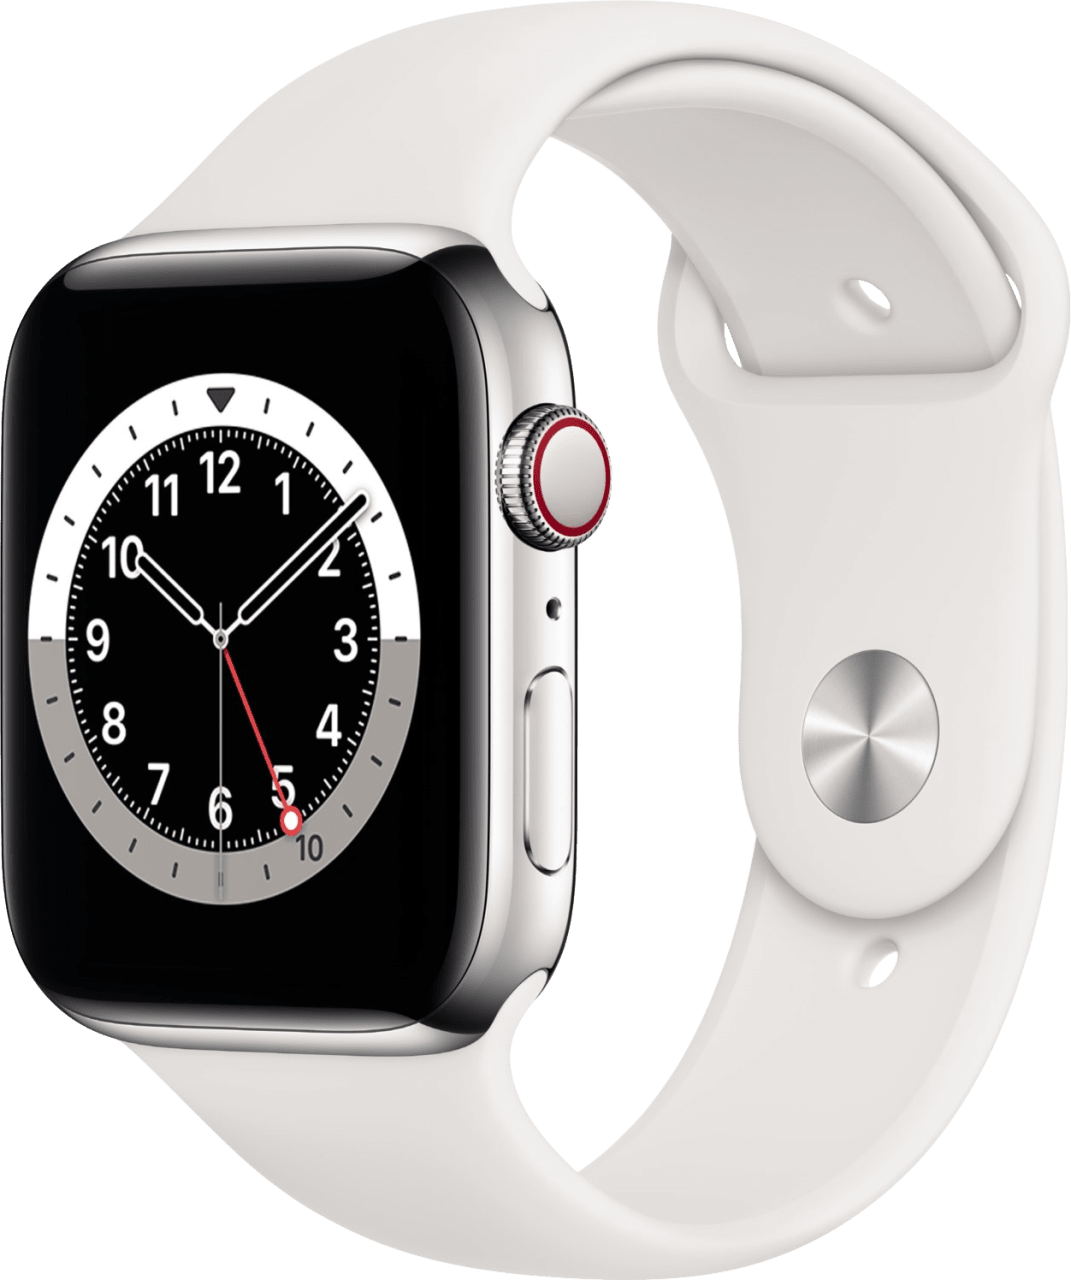 Weiß Apple Watch Series 6 GPS + Cellular , 40mm.1